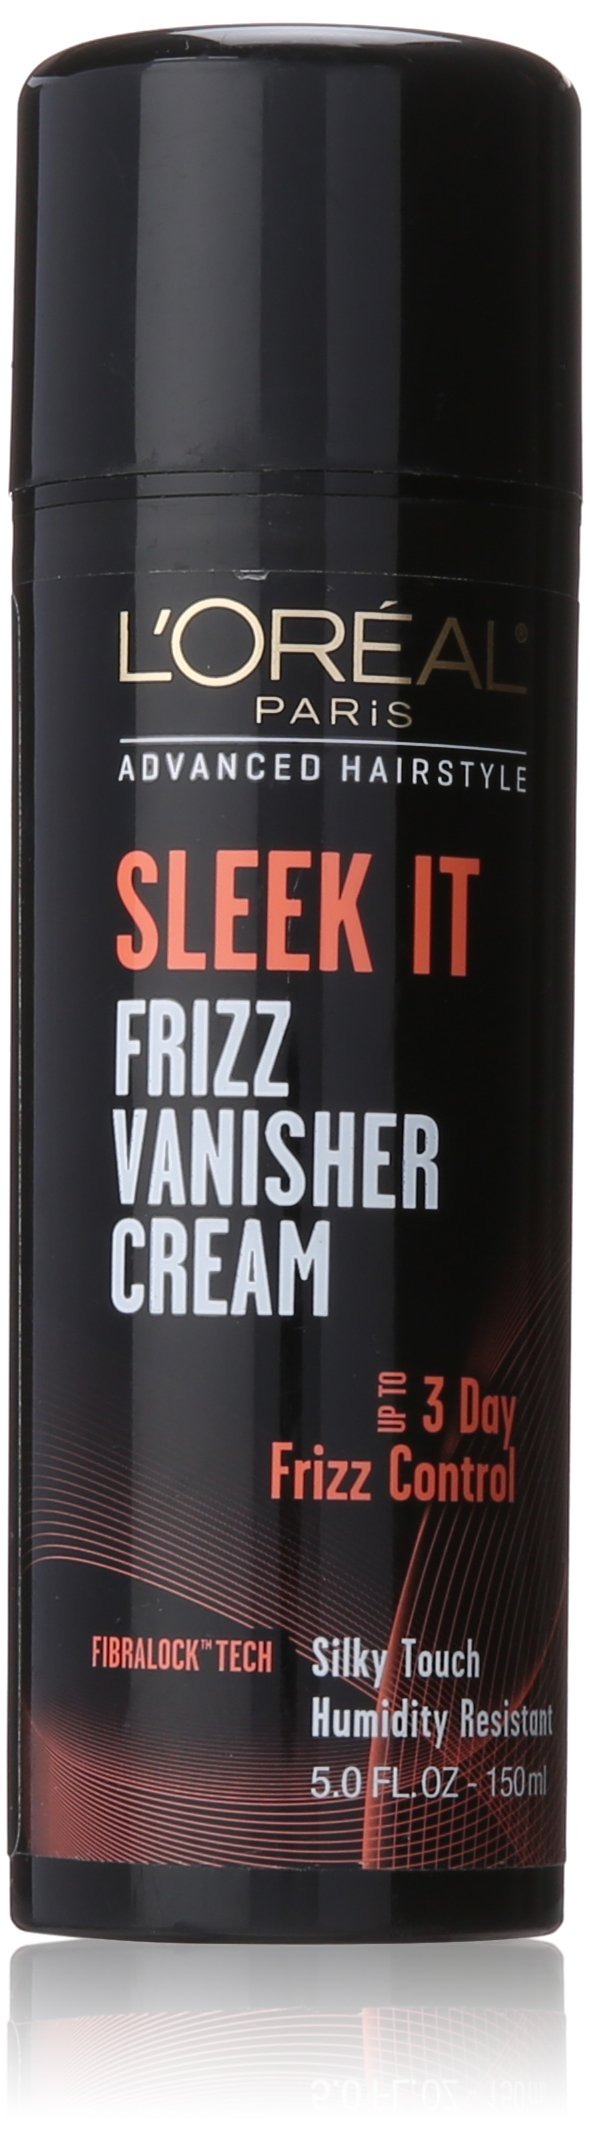 L'Oréal Paris Advanced Hairstyle SLEEK IT Frizz Vanisher Cream, 5 fl. oz. (Packaging May Vary)